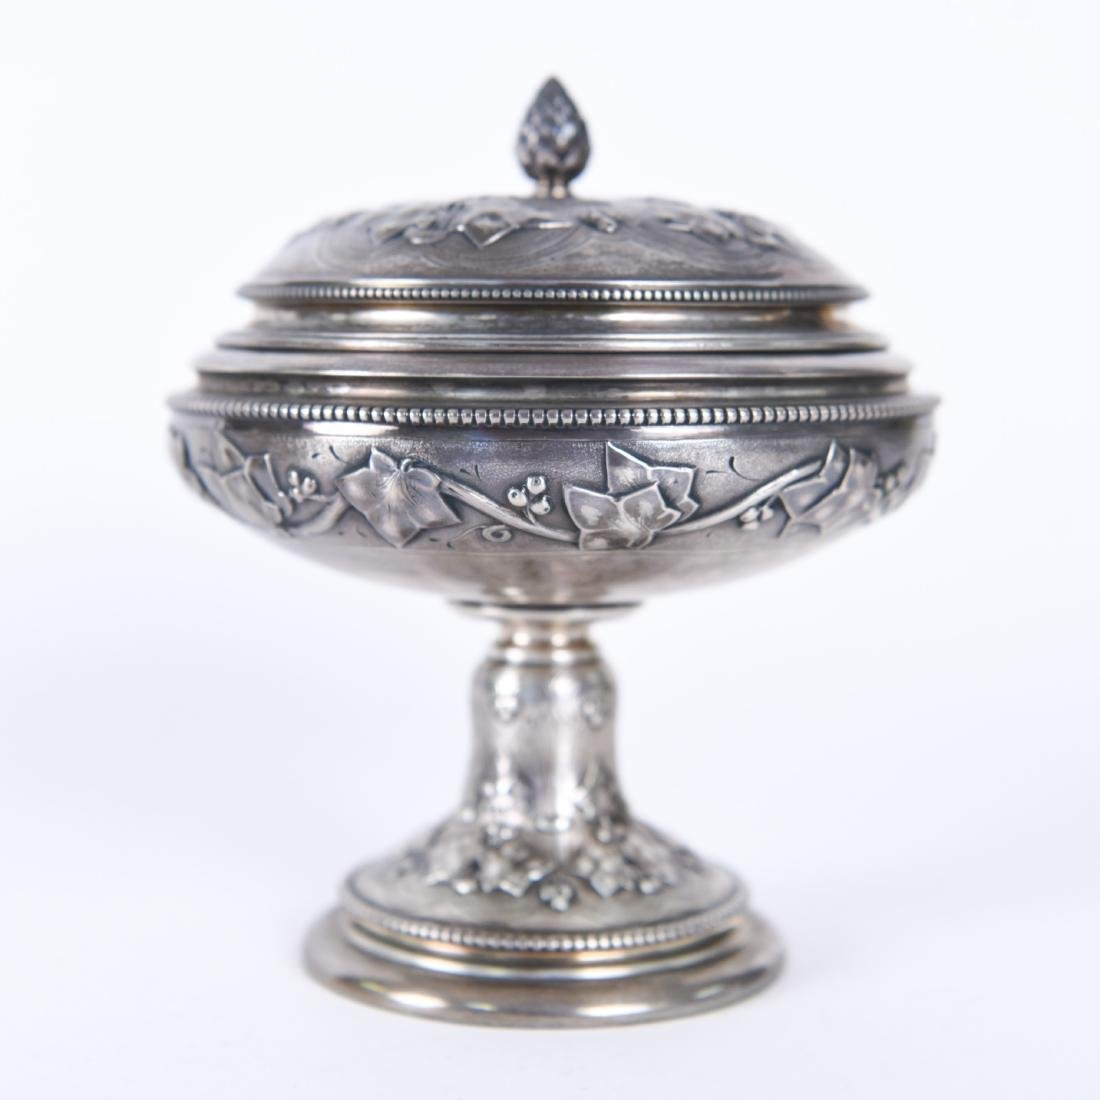 TIFFANY & CO OLD SILVER LIDDED COMPOTE